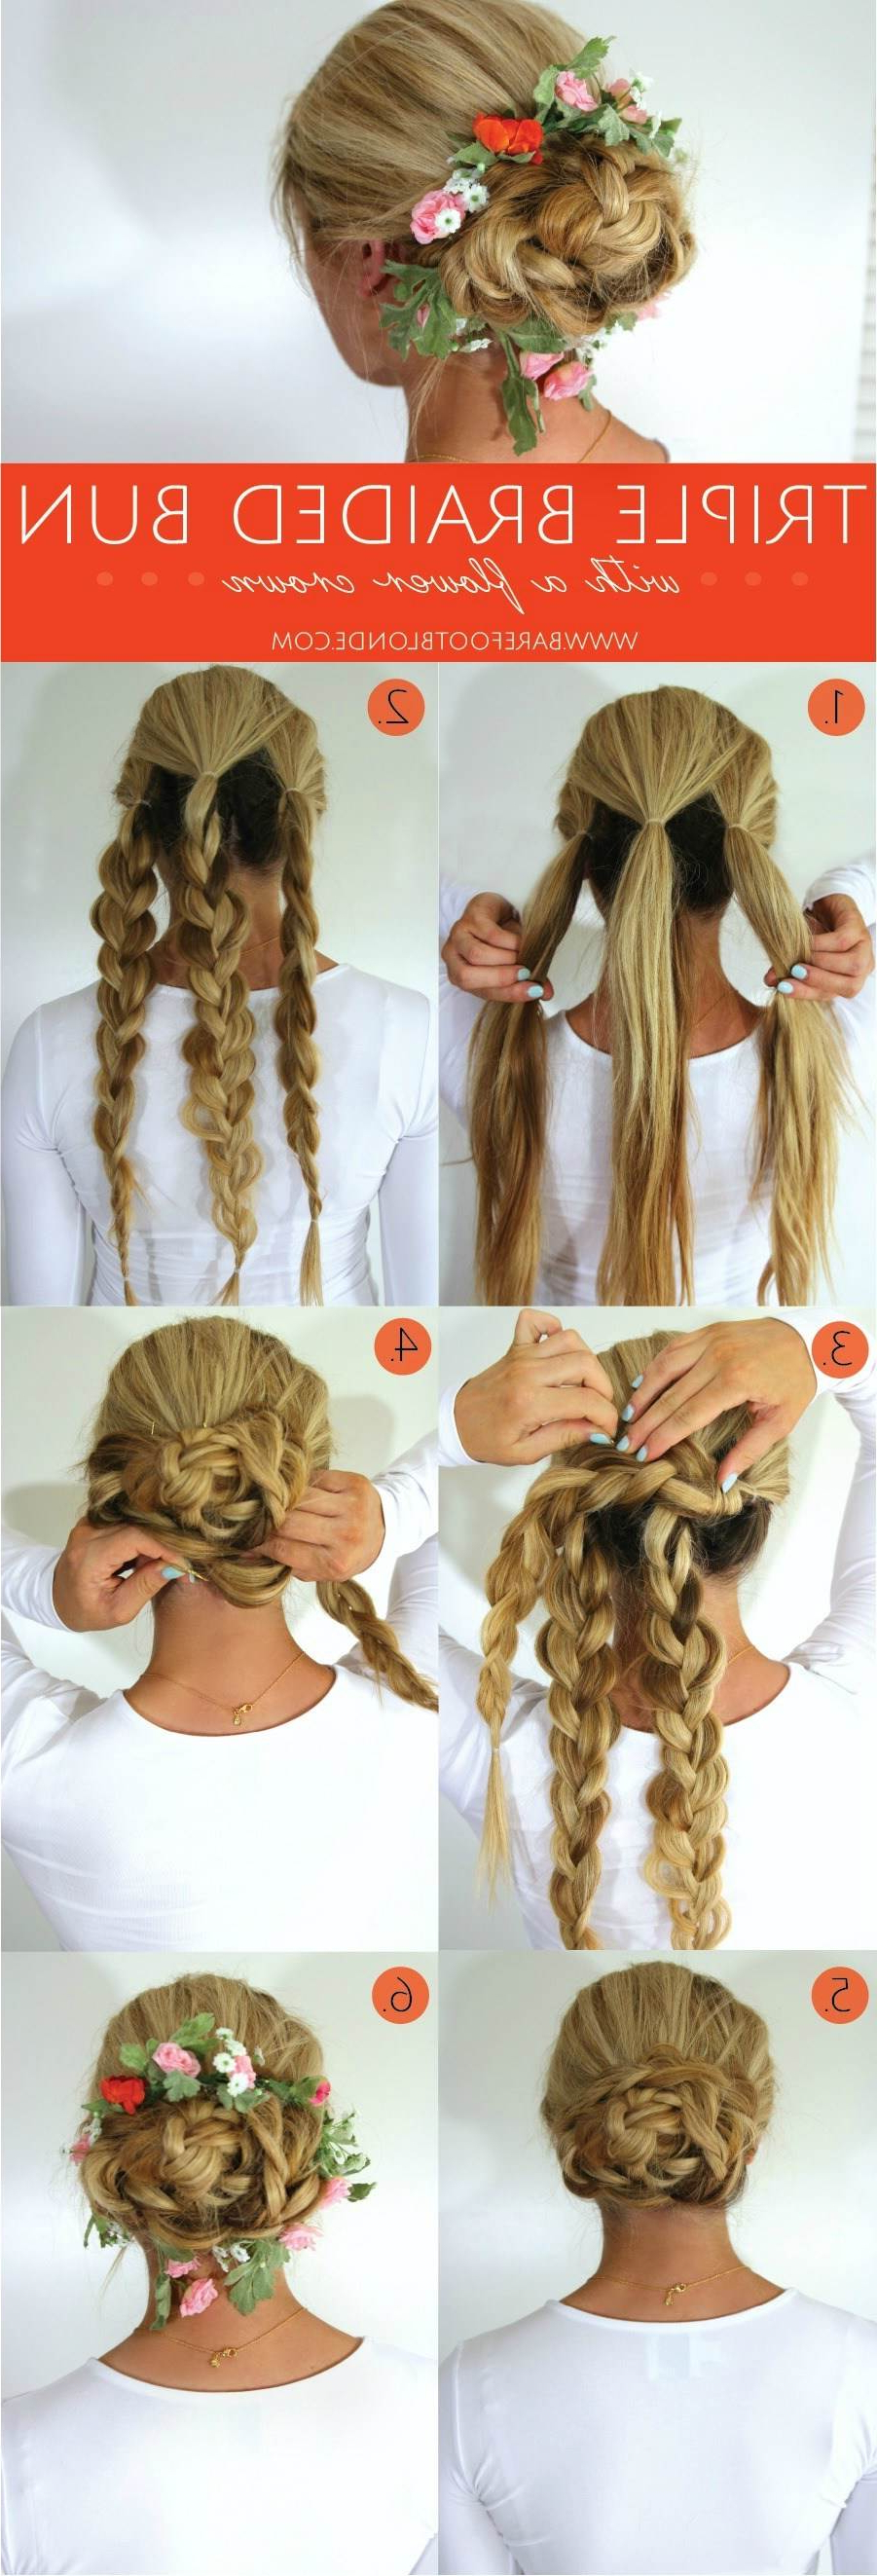 Most Recent Floral Braid Crowns Hairstyles For Prom Pertaining To 10 Of The Best Braided Hairstyles – Makeup Tutorials (View 15 of 20)